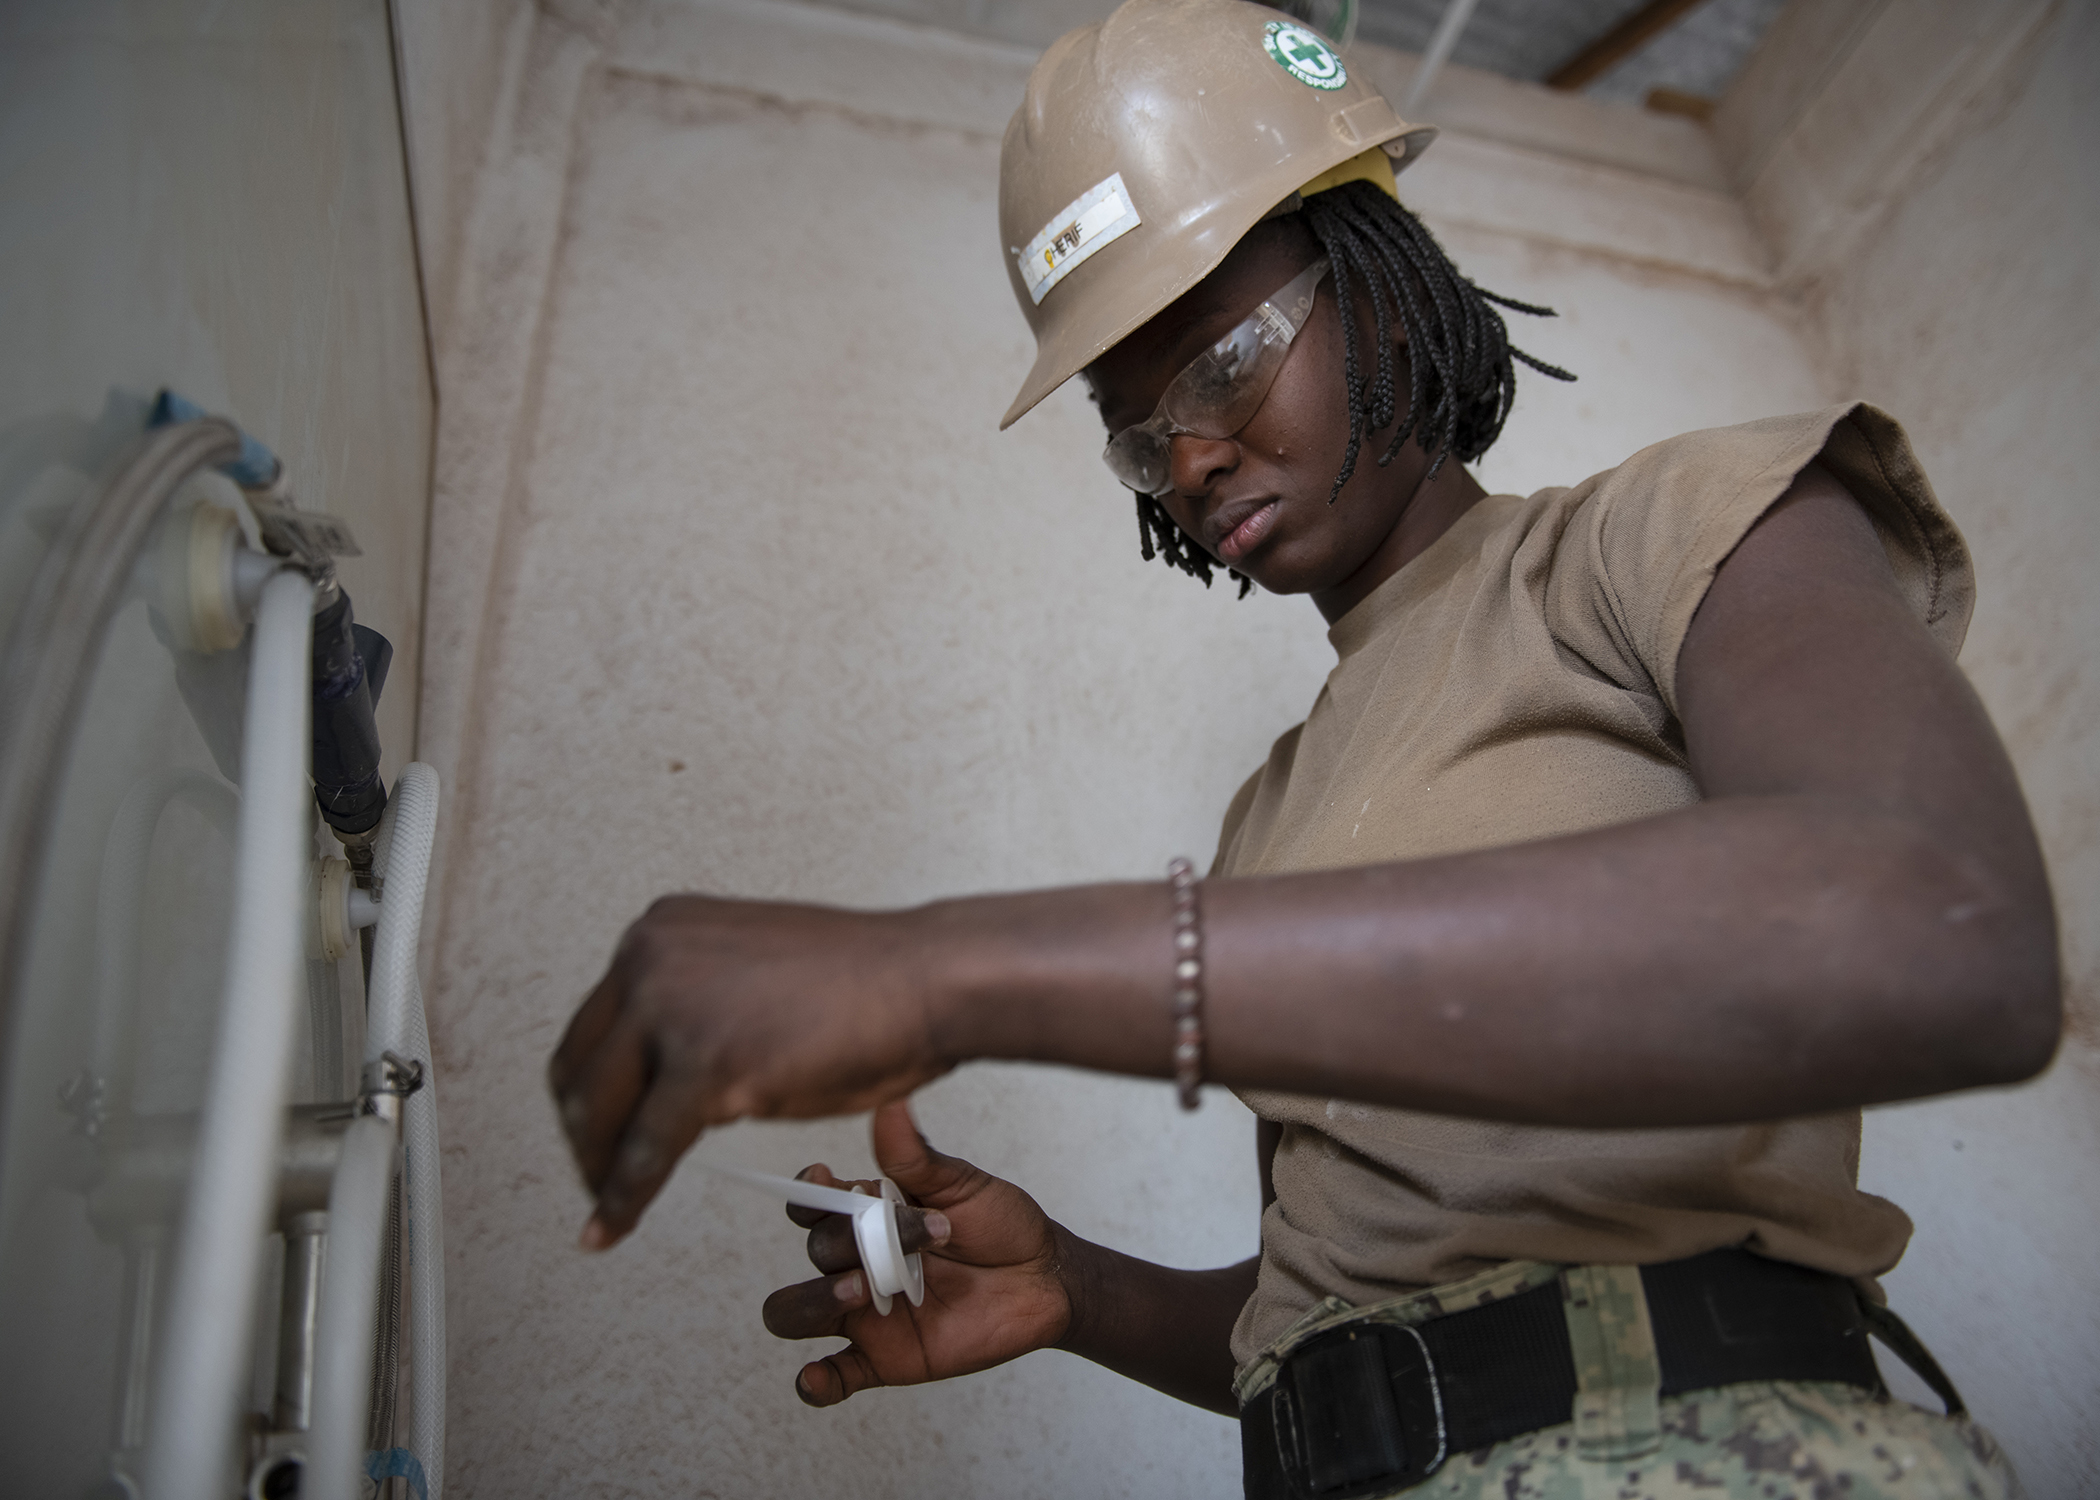 U.S. Navy Seaman Mariame Cherif, a Seabee assigned to Naval Mobile Construction Battalion 1, Combined Joint Task Force-Horn of Africa, Camp Lemonnier, Djibouti, installs shower plumbing during the construction of the future Ali Oune, Djibouti, Women's Medical Clinic, Dec. 27, 2018. Cherif speaks six languages and acts as the battalion's translator, utilizing her French speaking skill. The clinic is intended to enhance the Ministry of Health for Djibouti's ability to provide basic medical, birth and after care to the Ali Oune village and its more than 1,000 residents and rural neighbors. (U.S. Air Force photo by Tech. Sgt. Shawn Nickel)